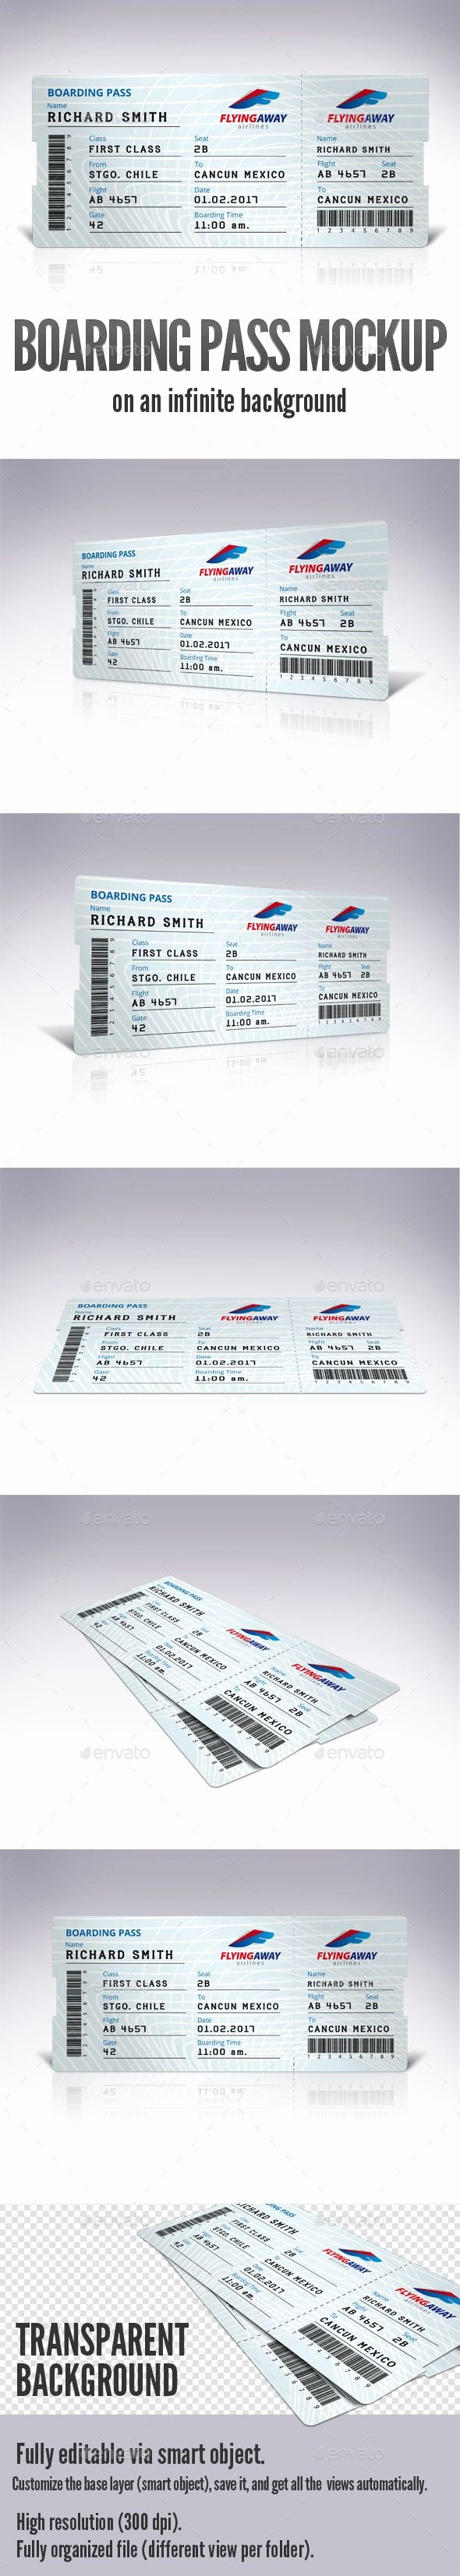 Boarding Pass Template Photoshop Best Of Pin by Bashooka Web & Graphic Design On Random Mockup